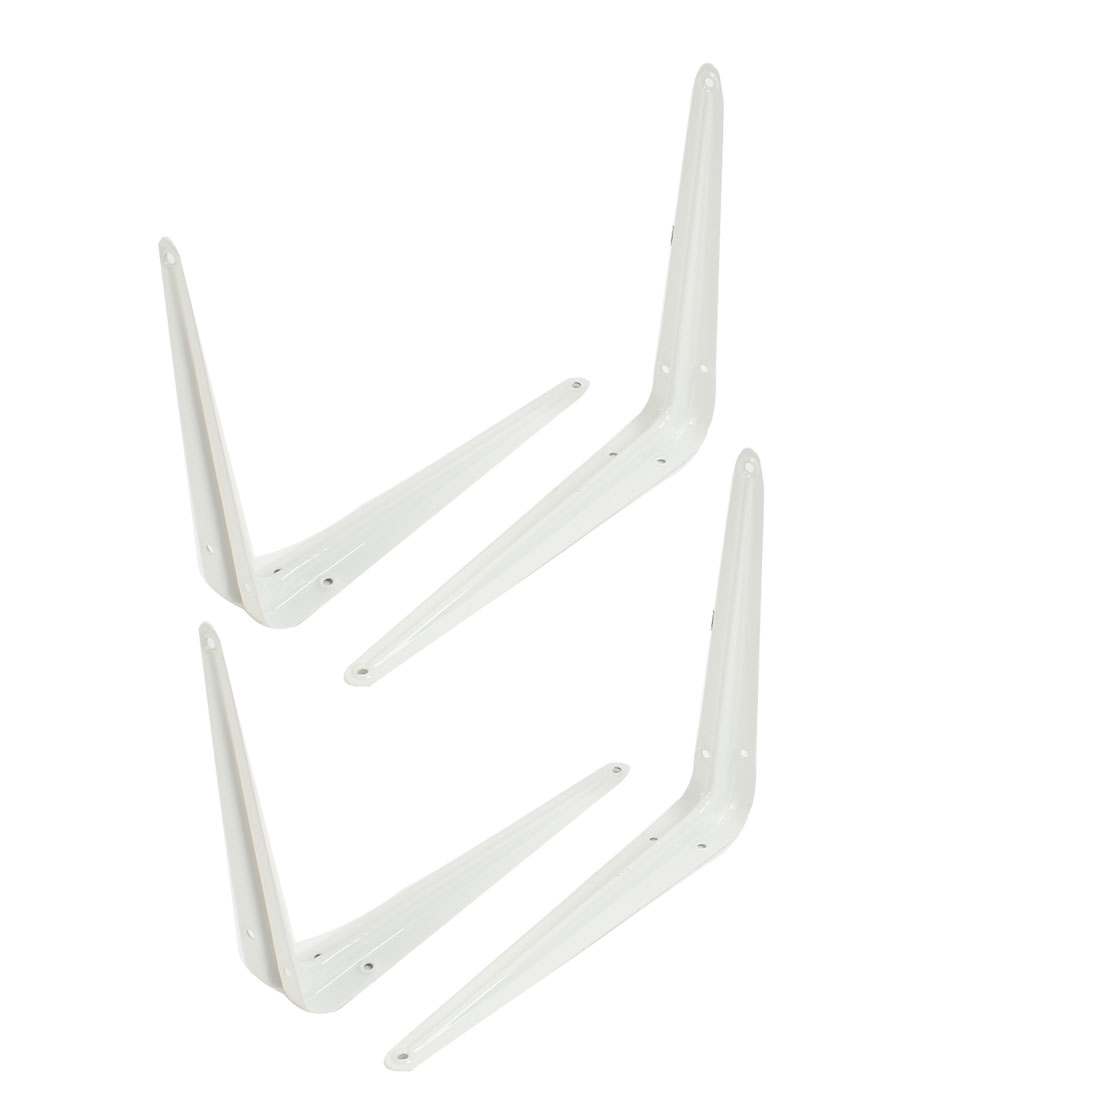 4 Pcs L Shaped Wall Mount Support Shelf Bracket Frame 20cm x 15cm